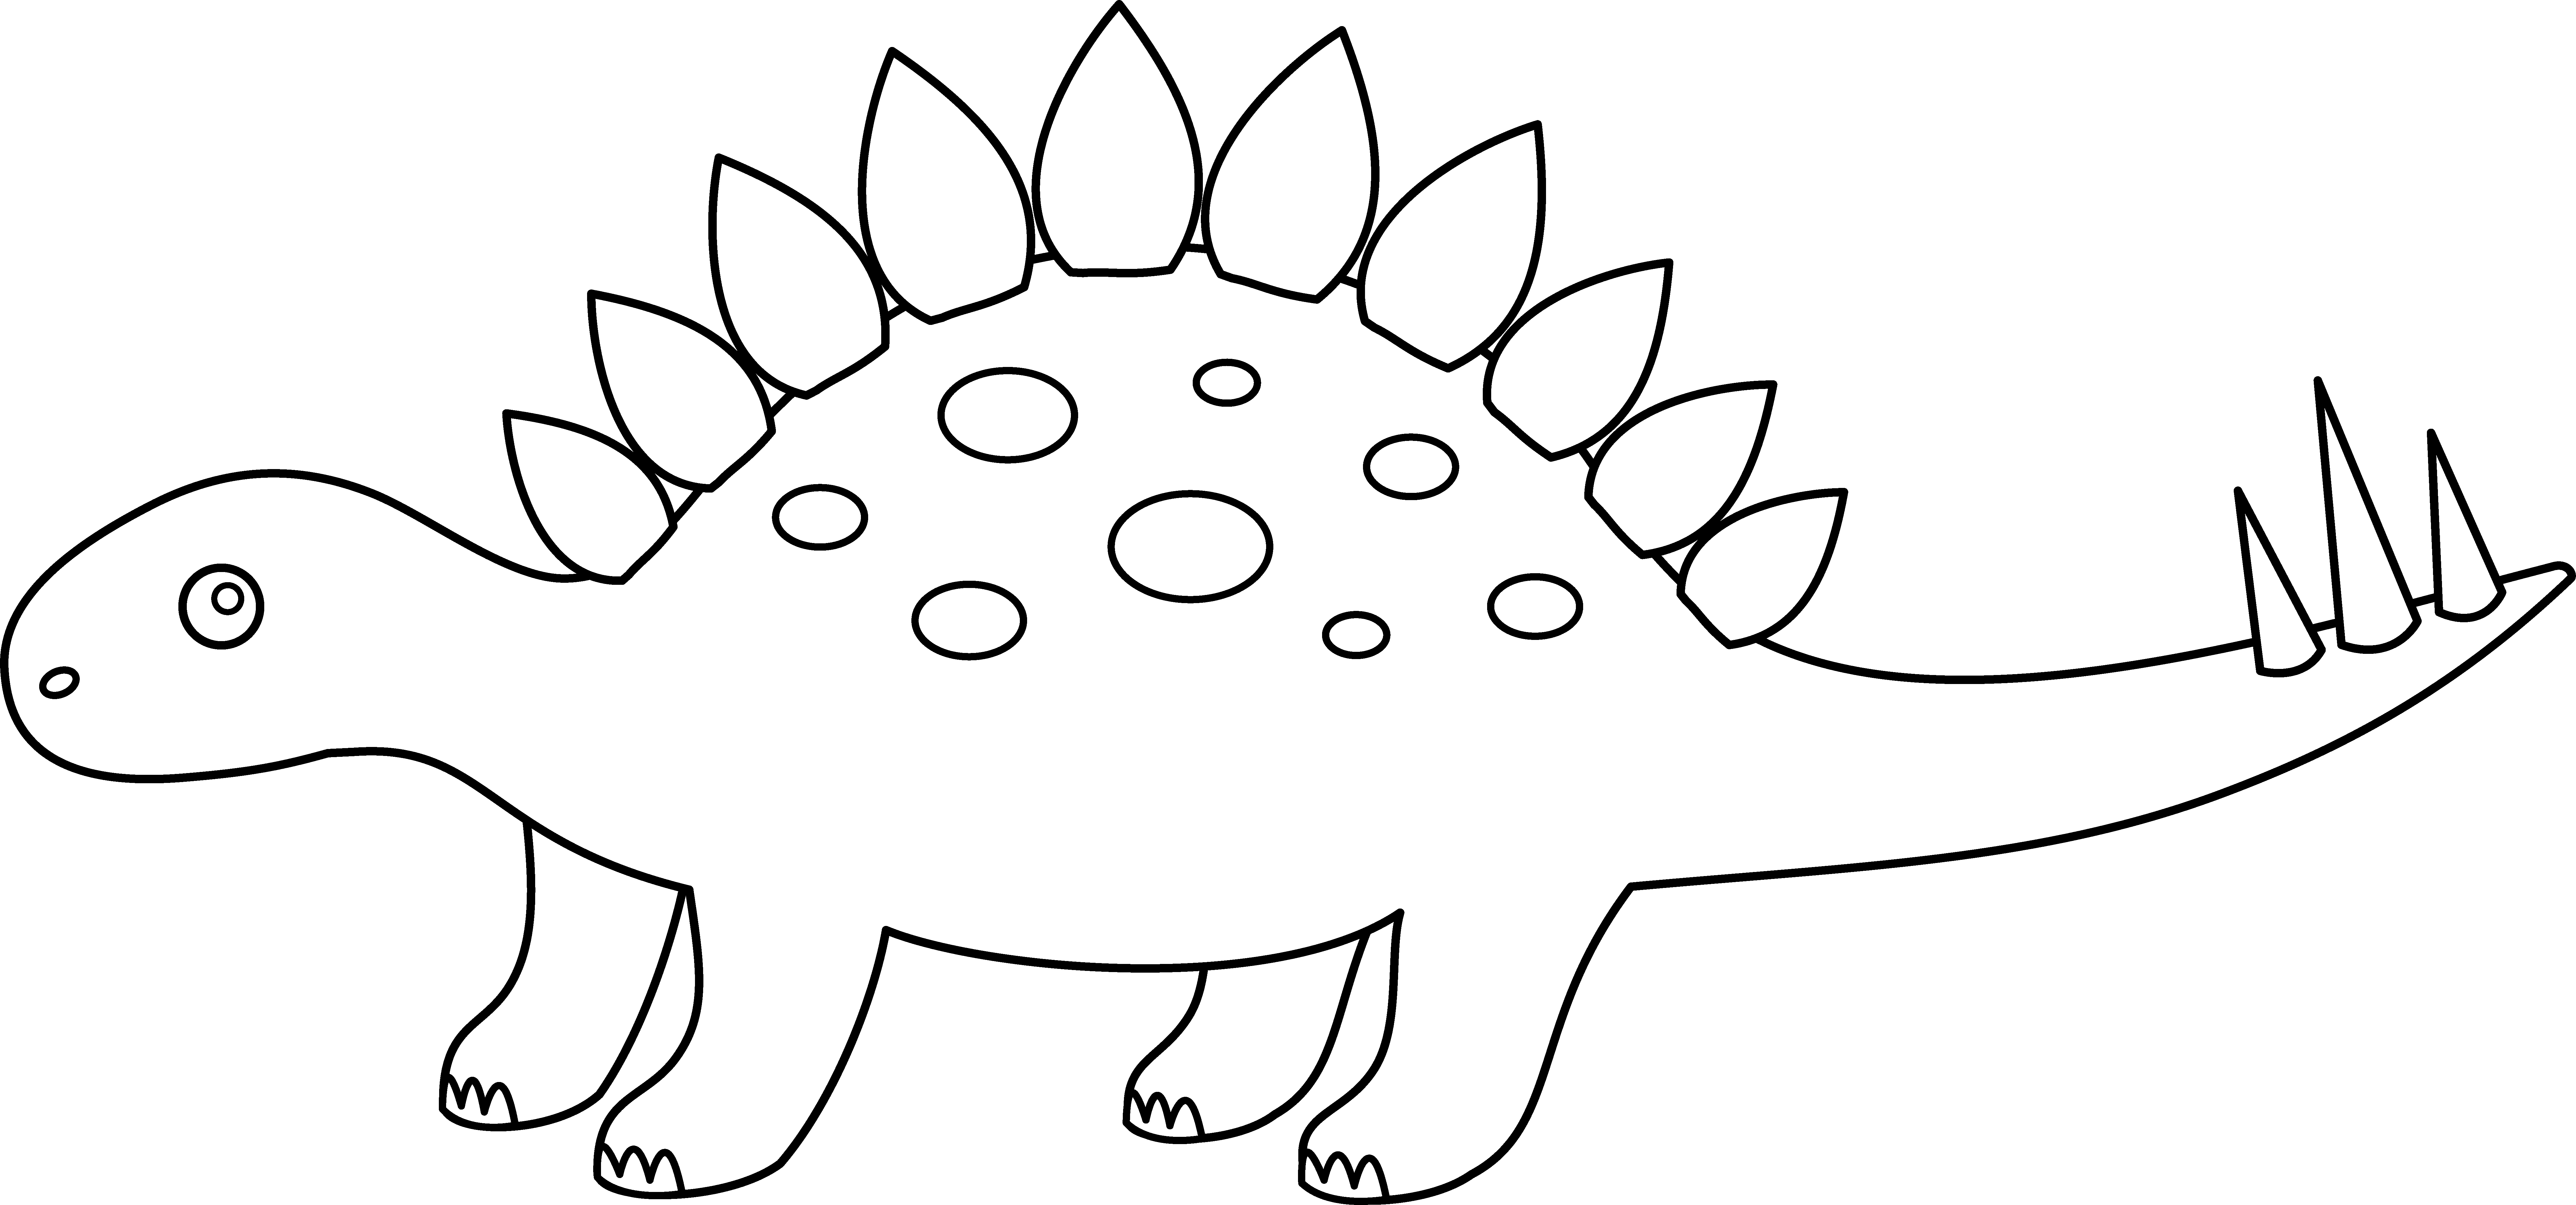 Stegosaurus vector dinosaur silhouette. Free outline download clip